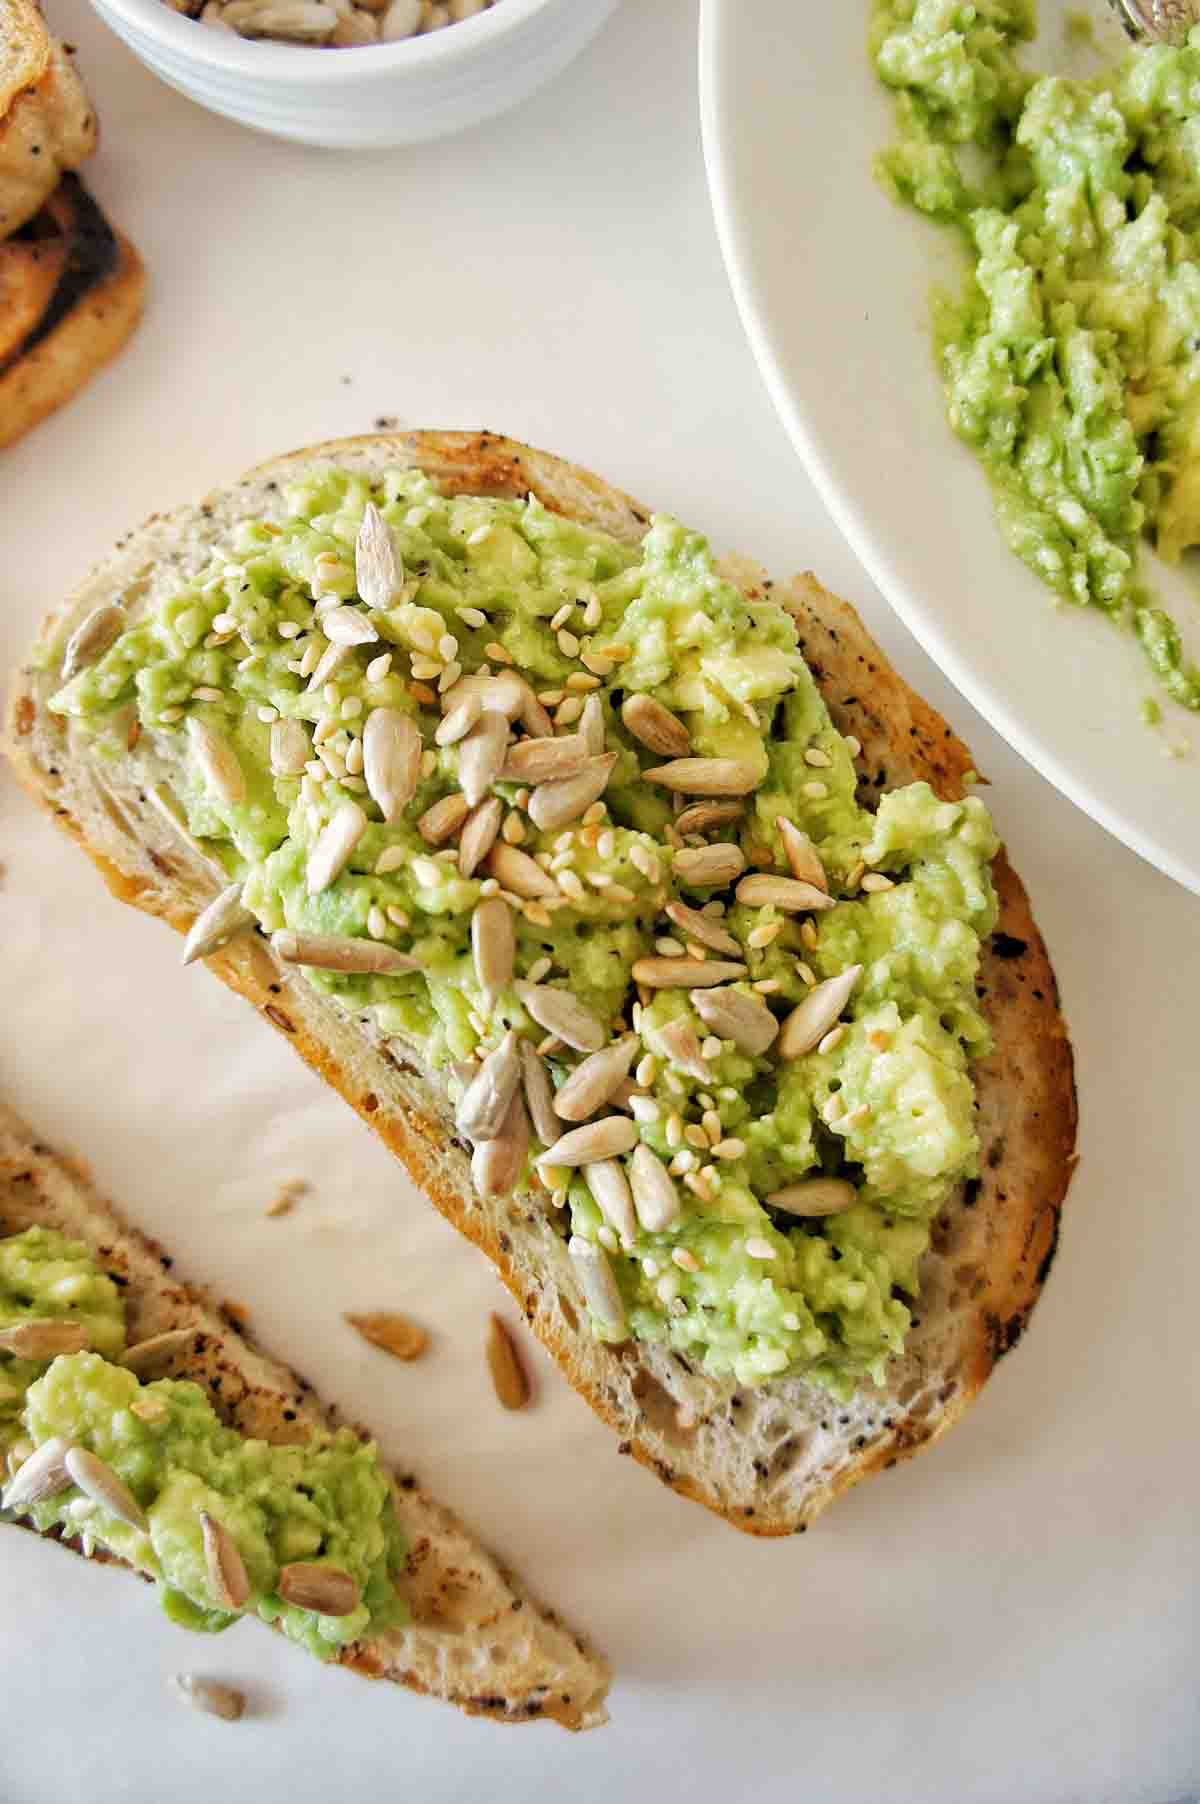 Avocado on toast with toasted sesame and sunflower seeds